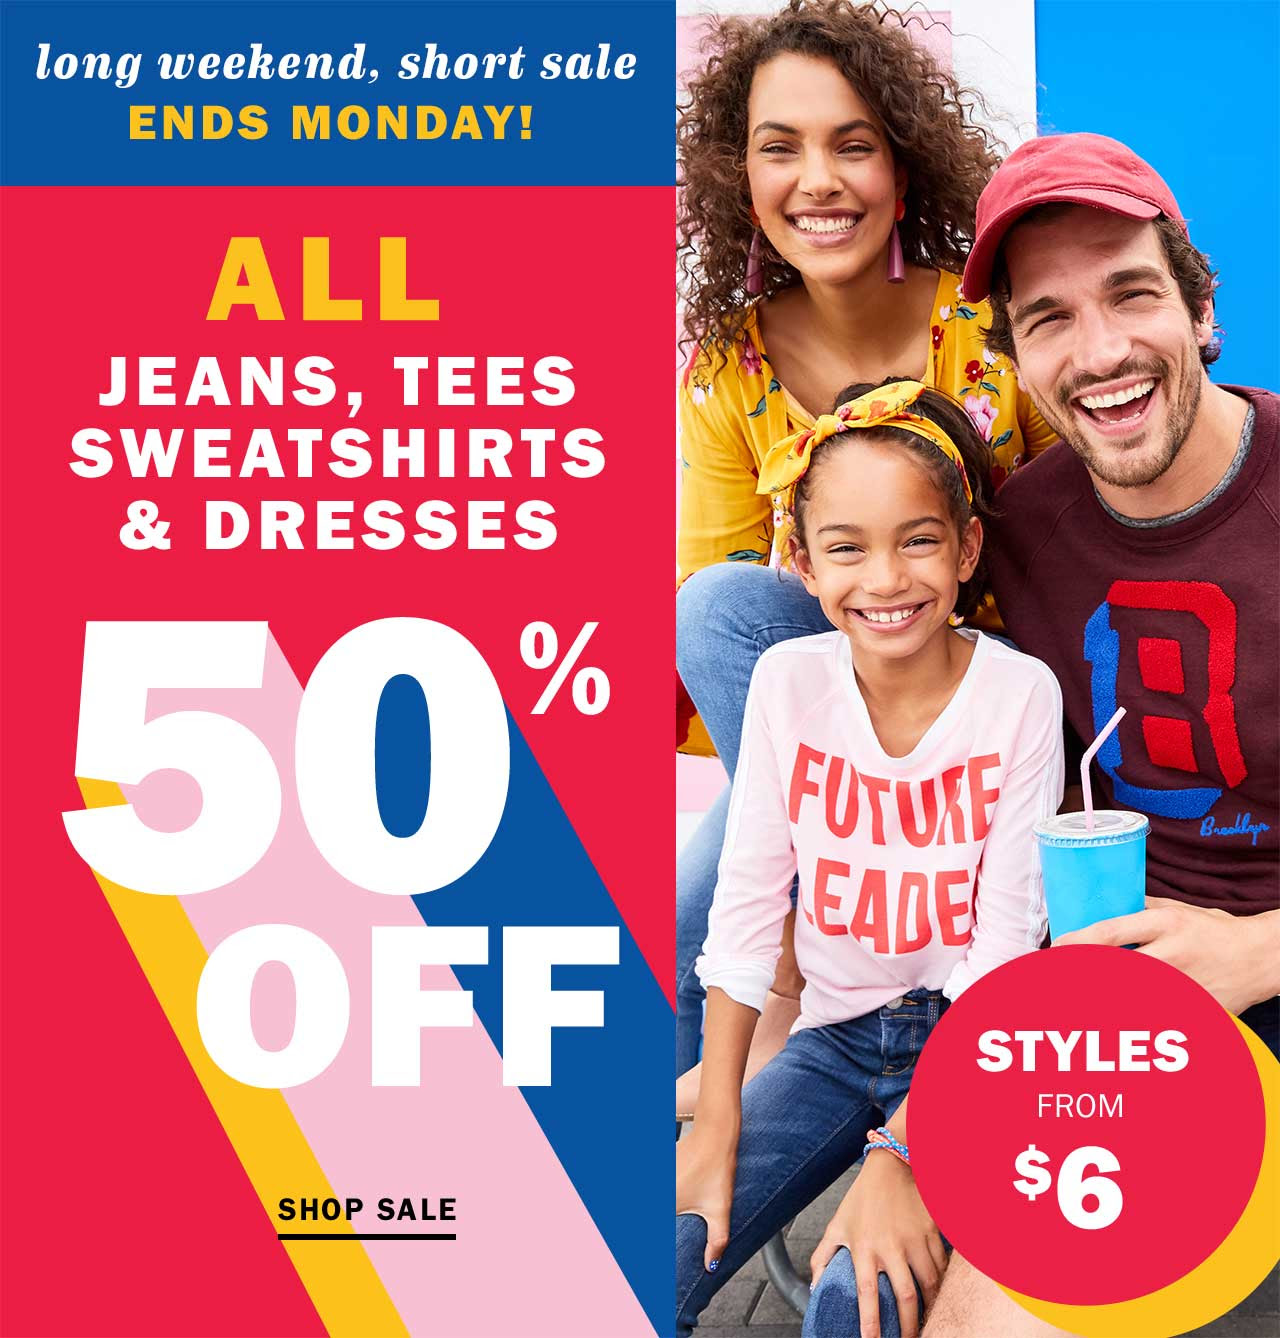 ALL JEANS, TEES SWEATSHIRTS & DRESSES 50% OFF